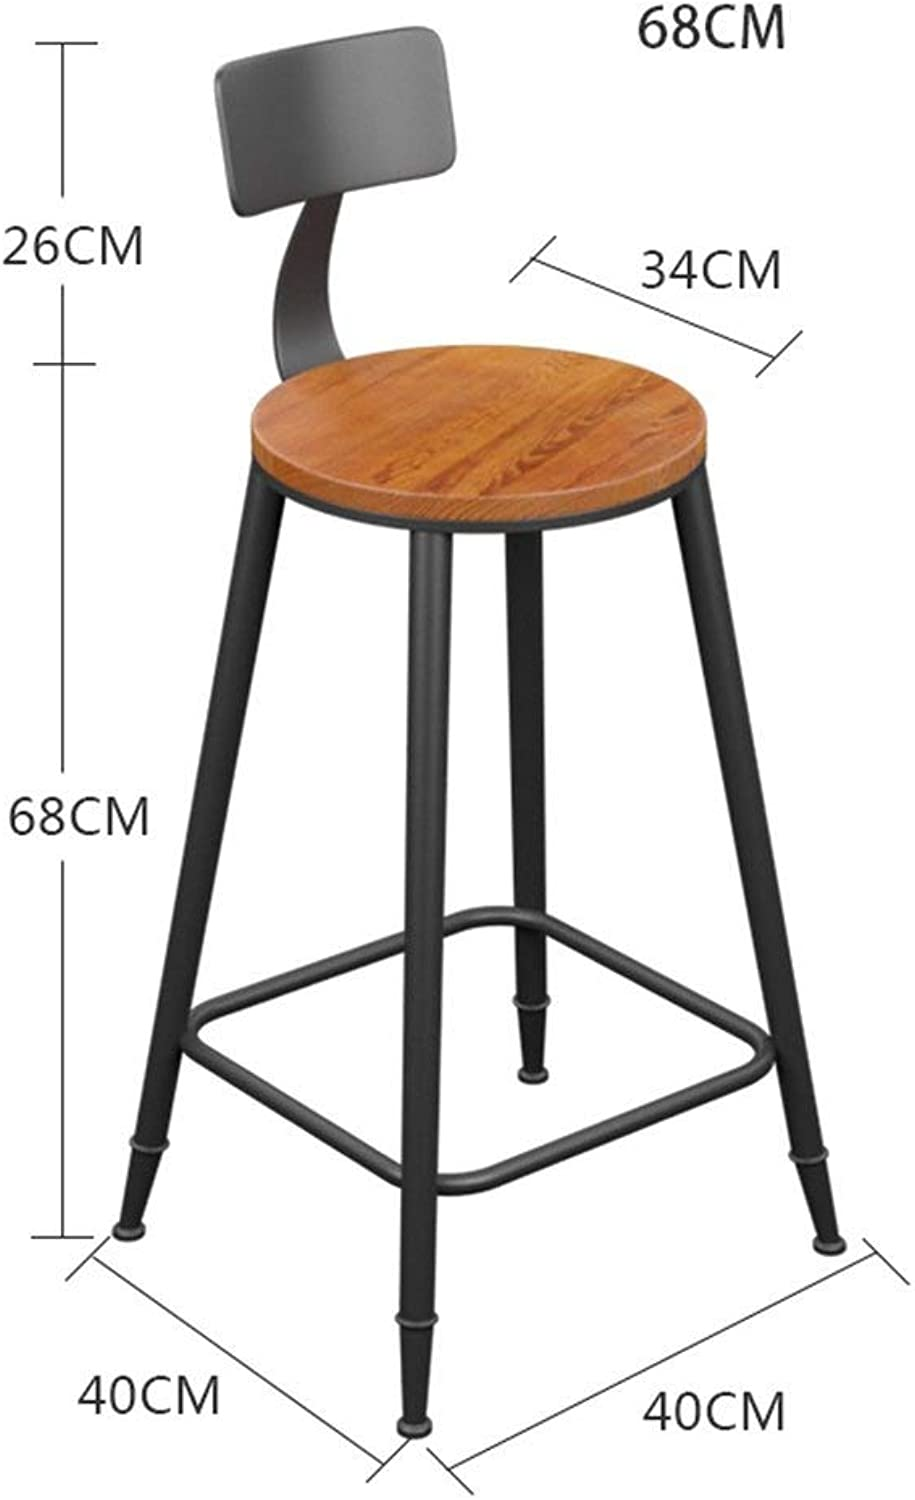 Natural Pine Industrial Style Retro Bar Chair Kitchen Chair Dining Chair Continental Breakfast Chair HENGXIAO (color   Wood seat-68cm)